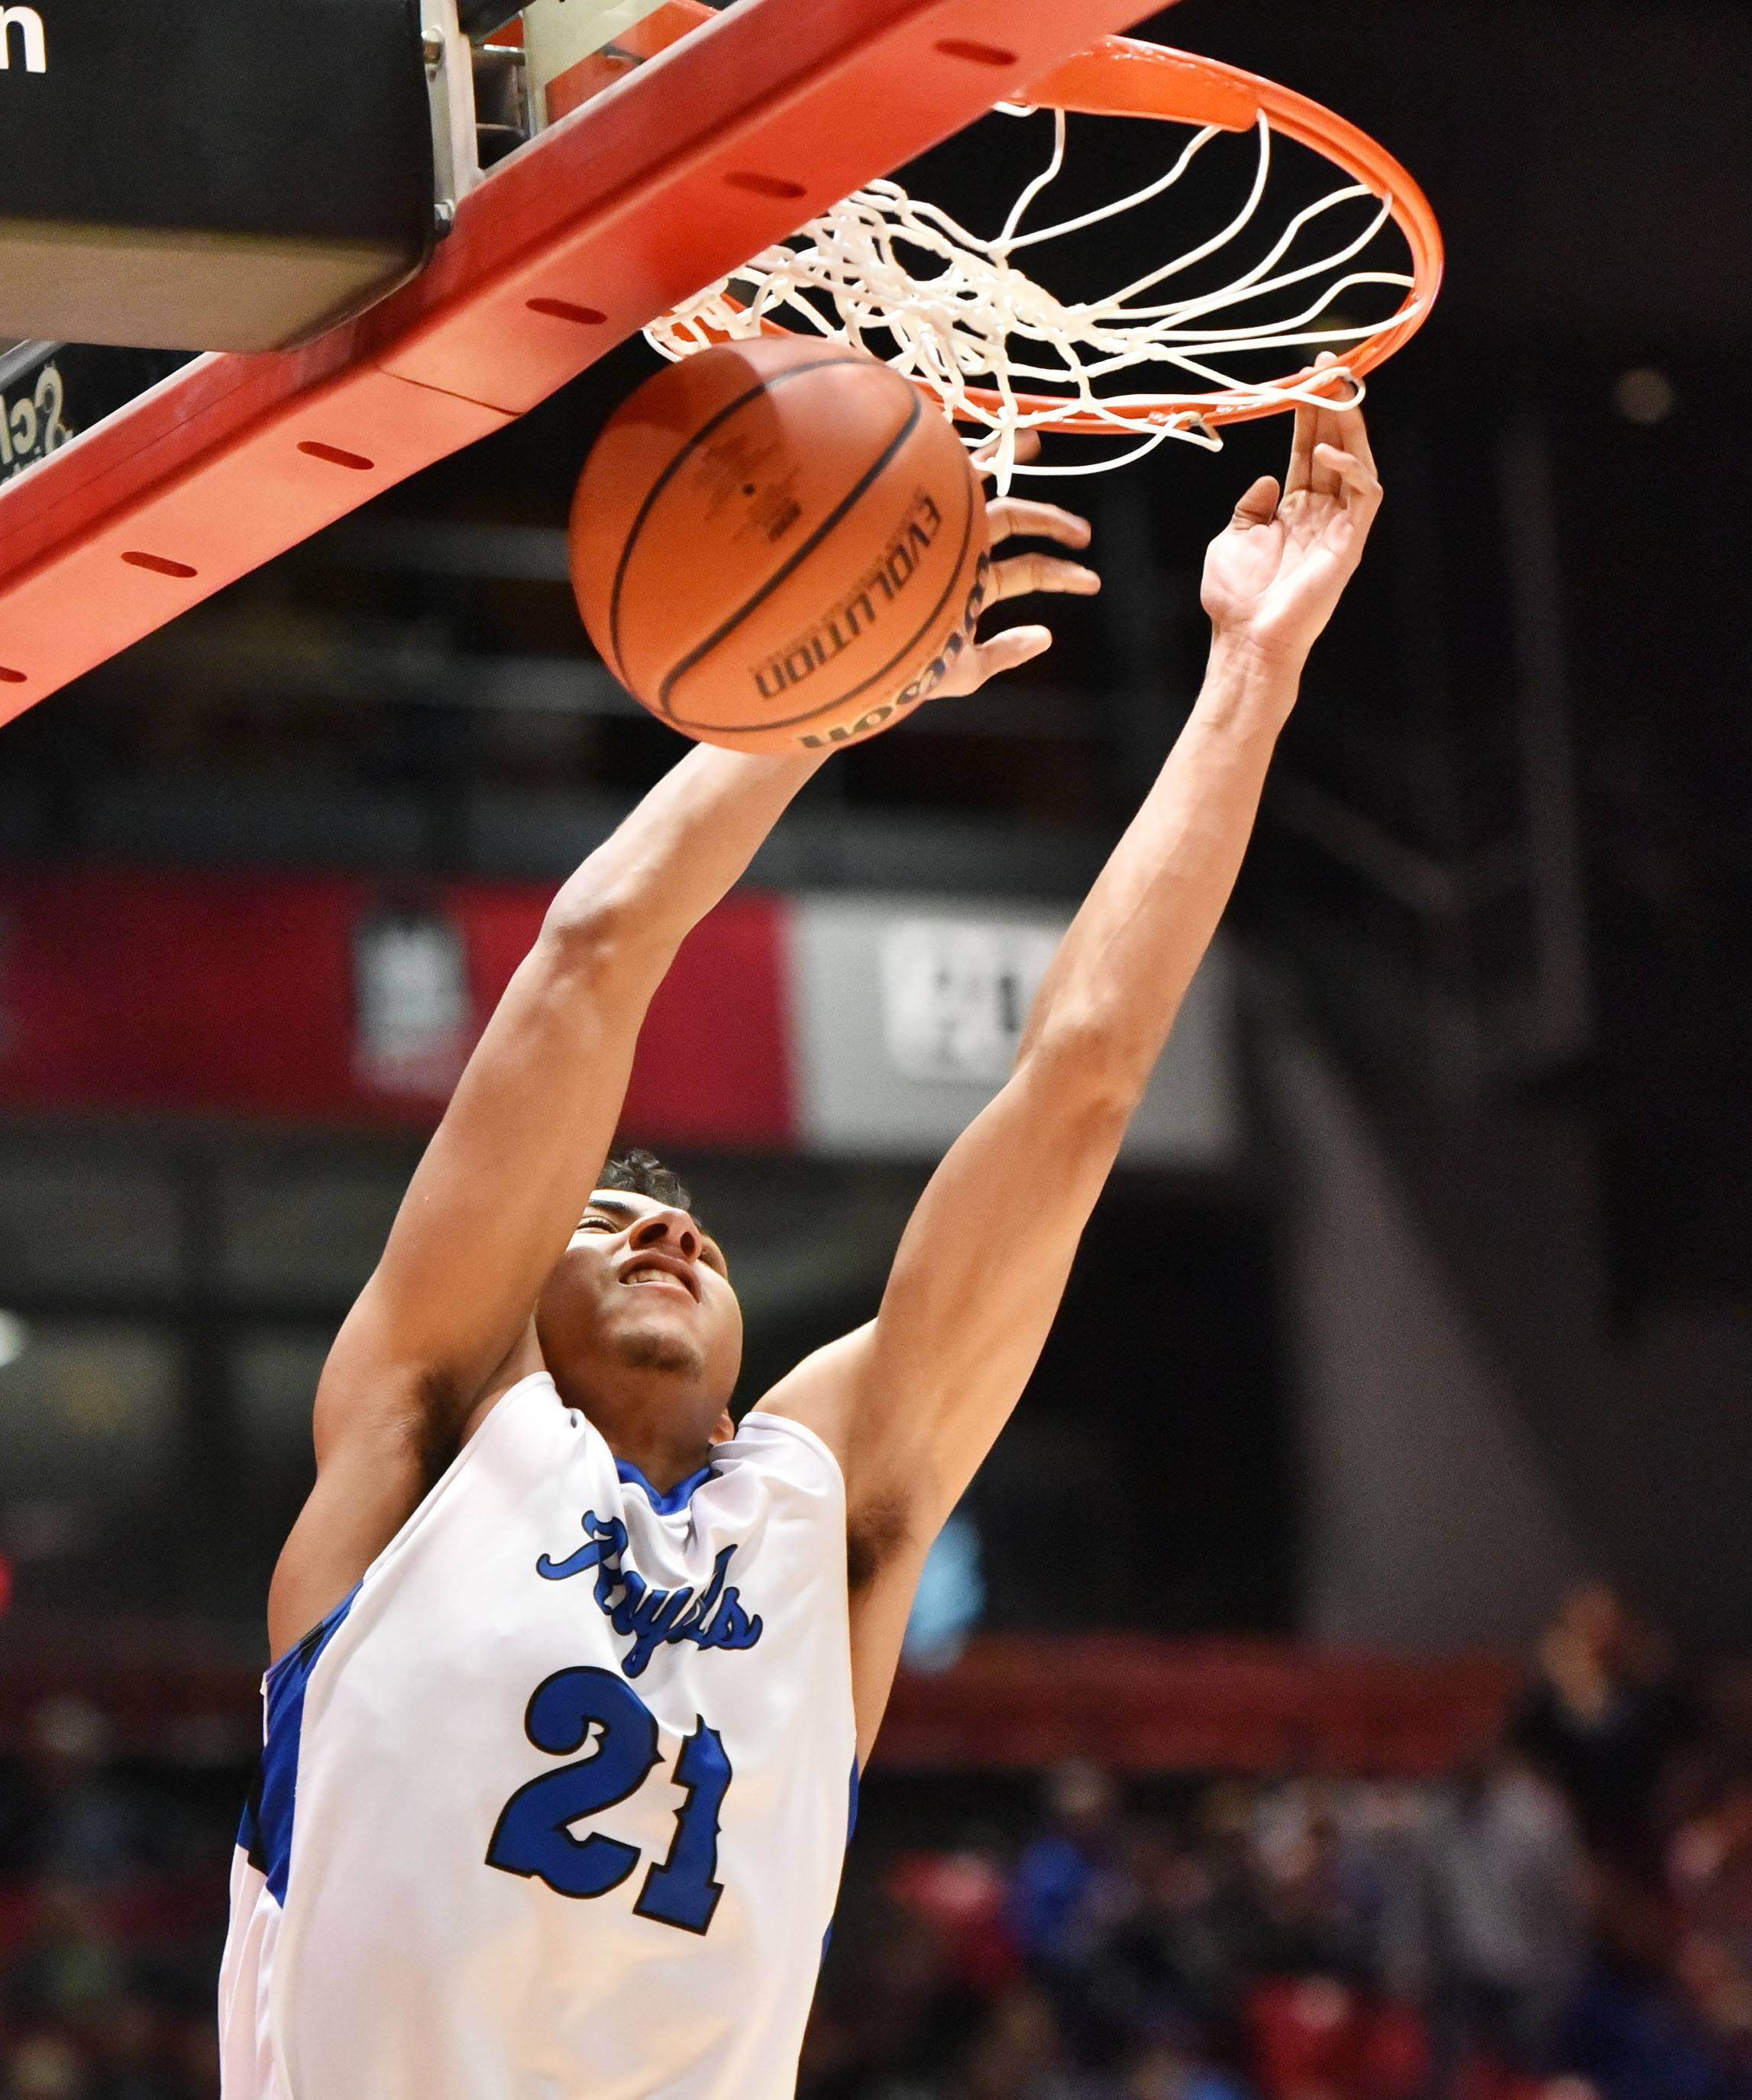 Larkin's Anthony Lynch dunks against Benet in the Class 4A supersectional boys basketball game at Northern Illinois University Tuesday.